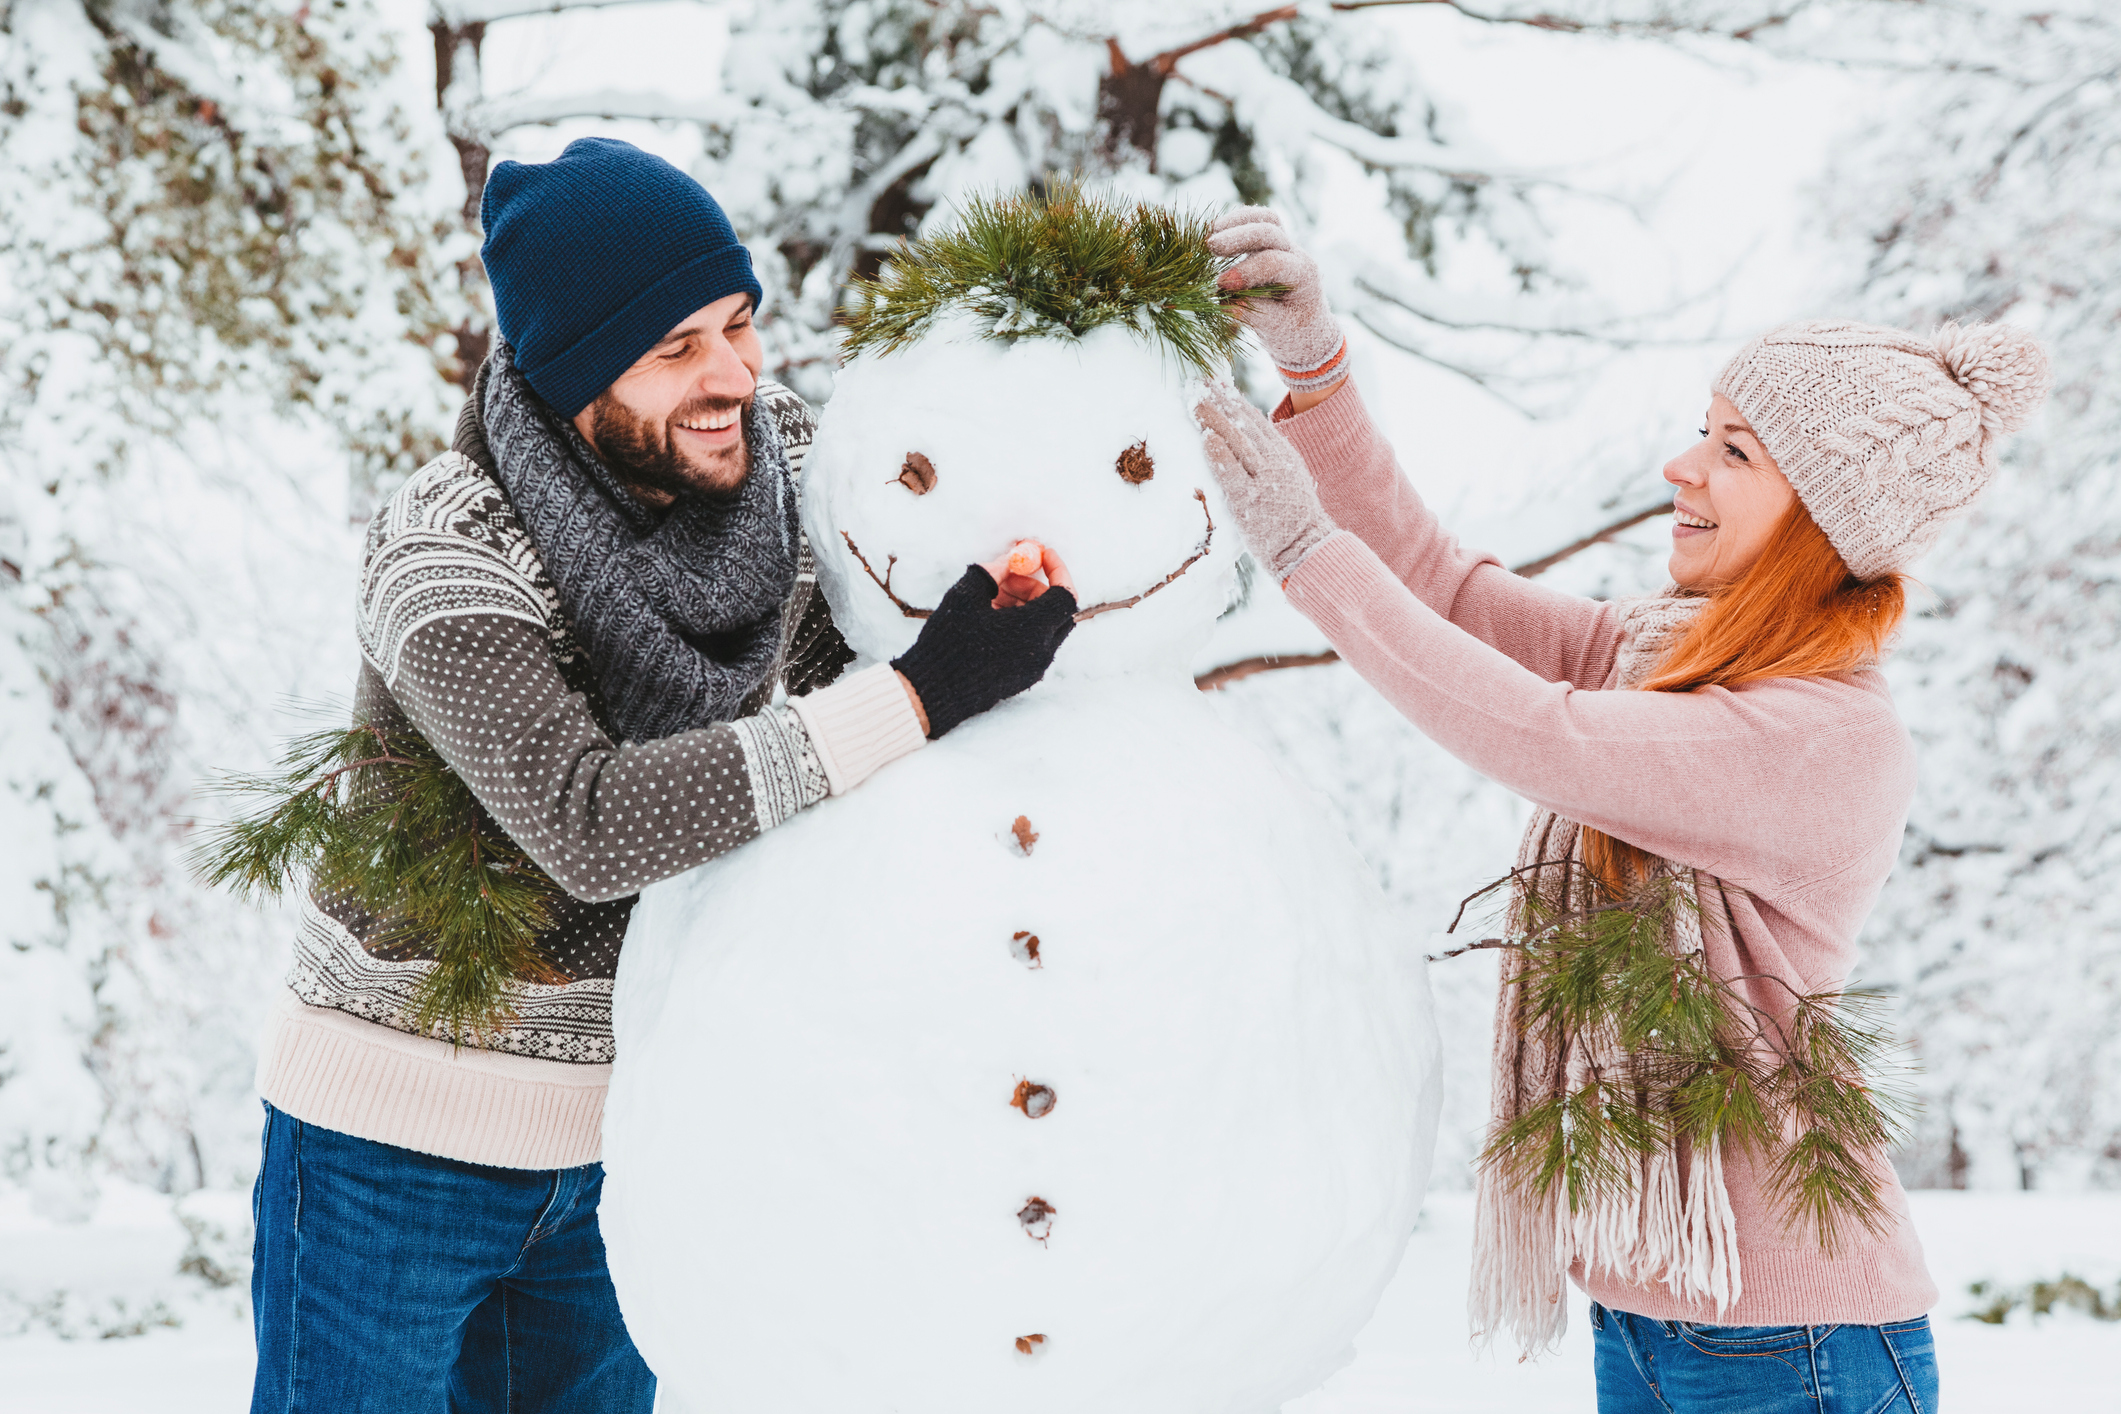 'Snowmanning' is winter's heartbreaking new dating trend